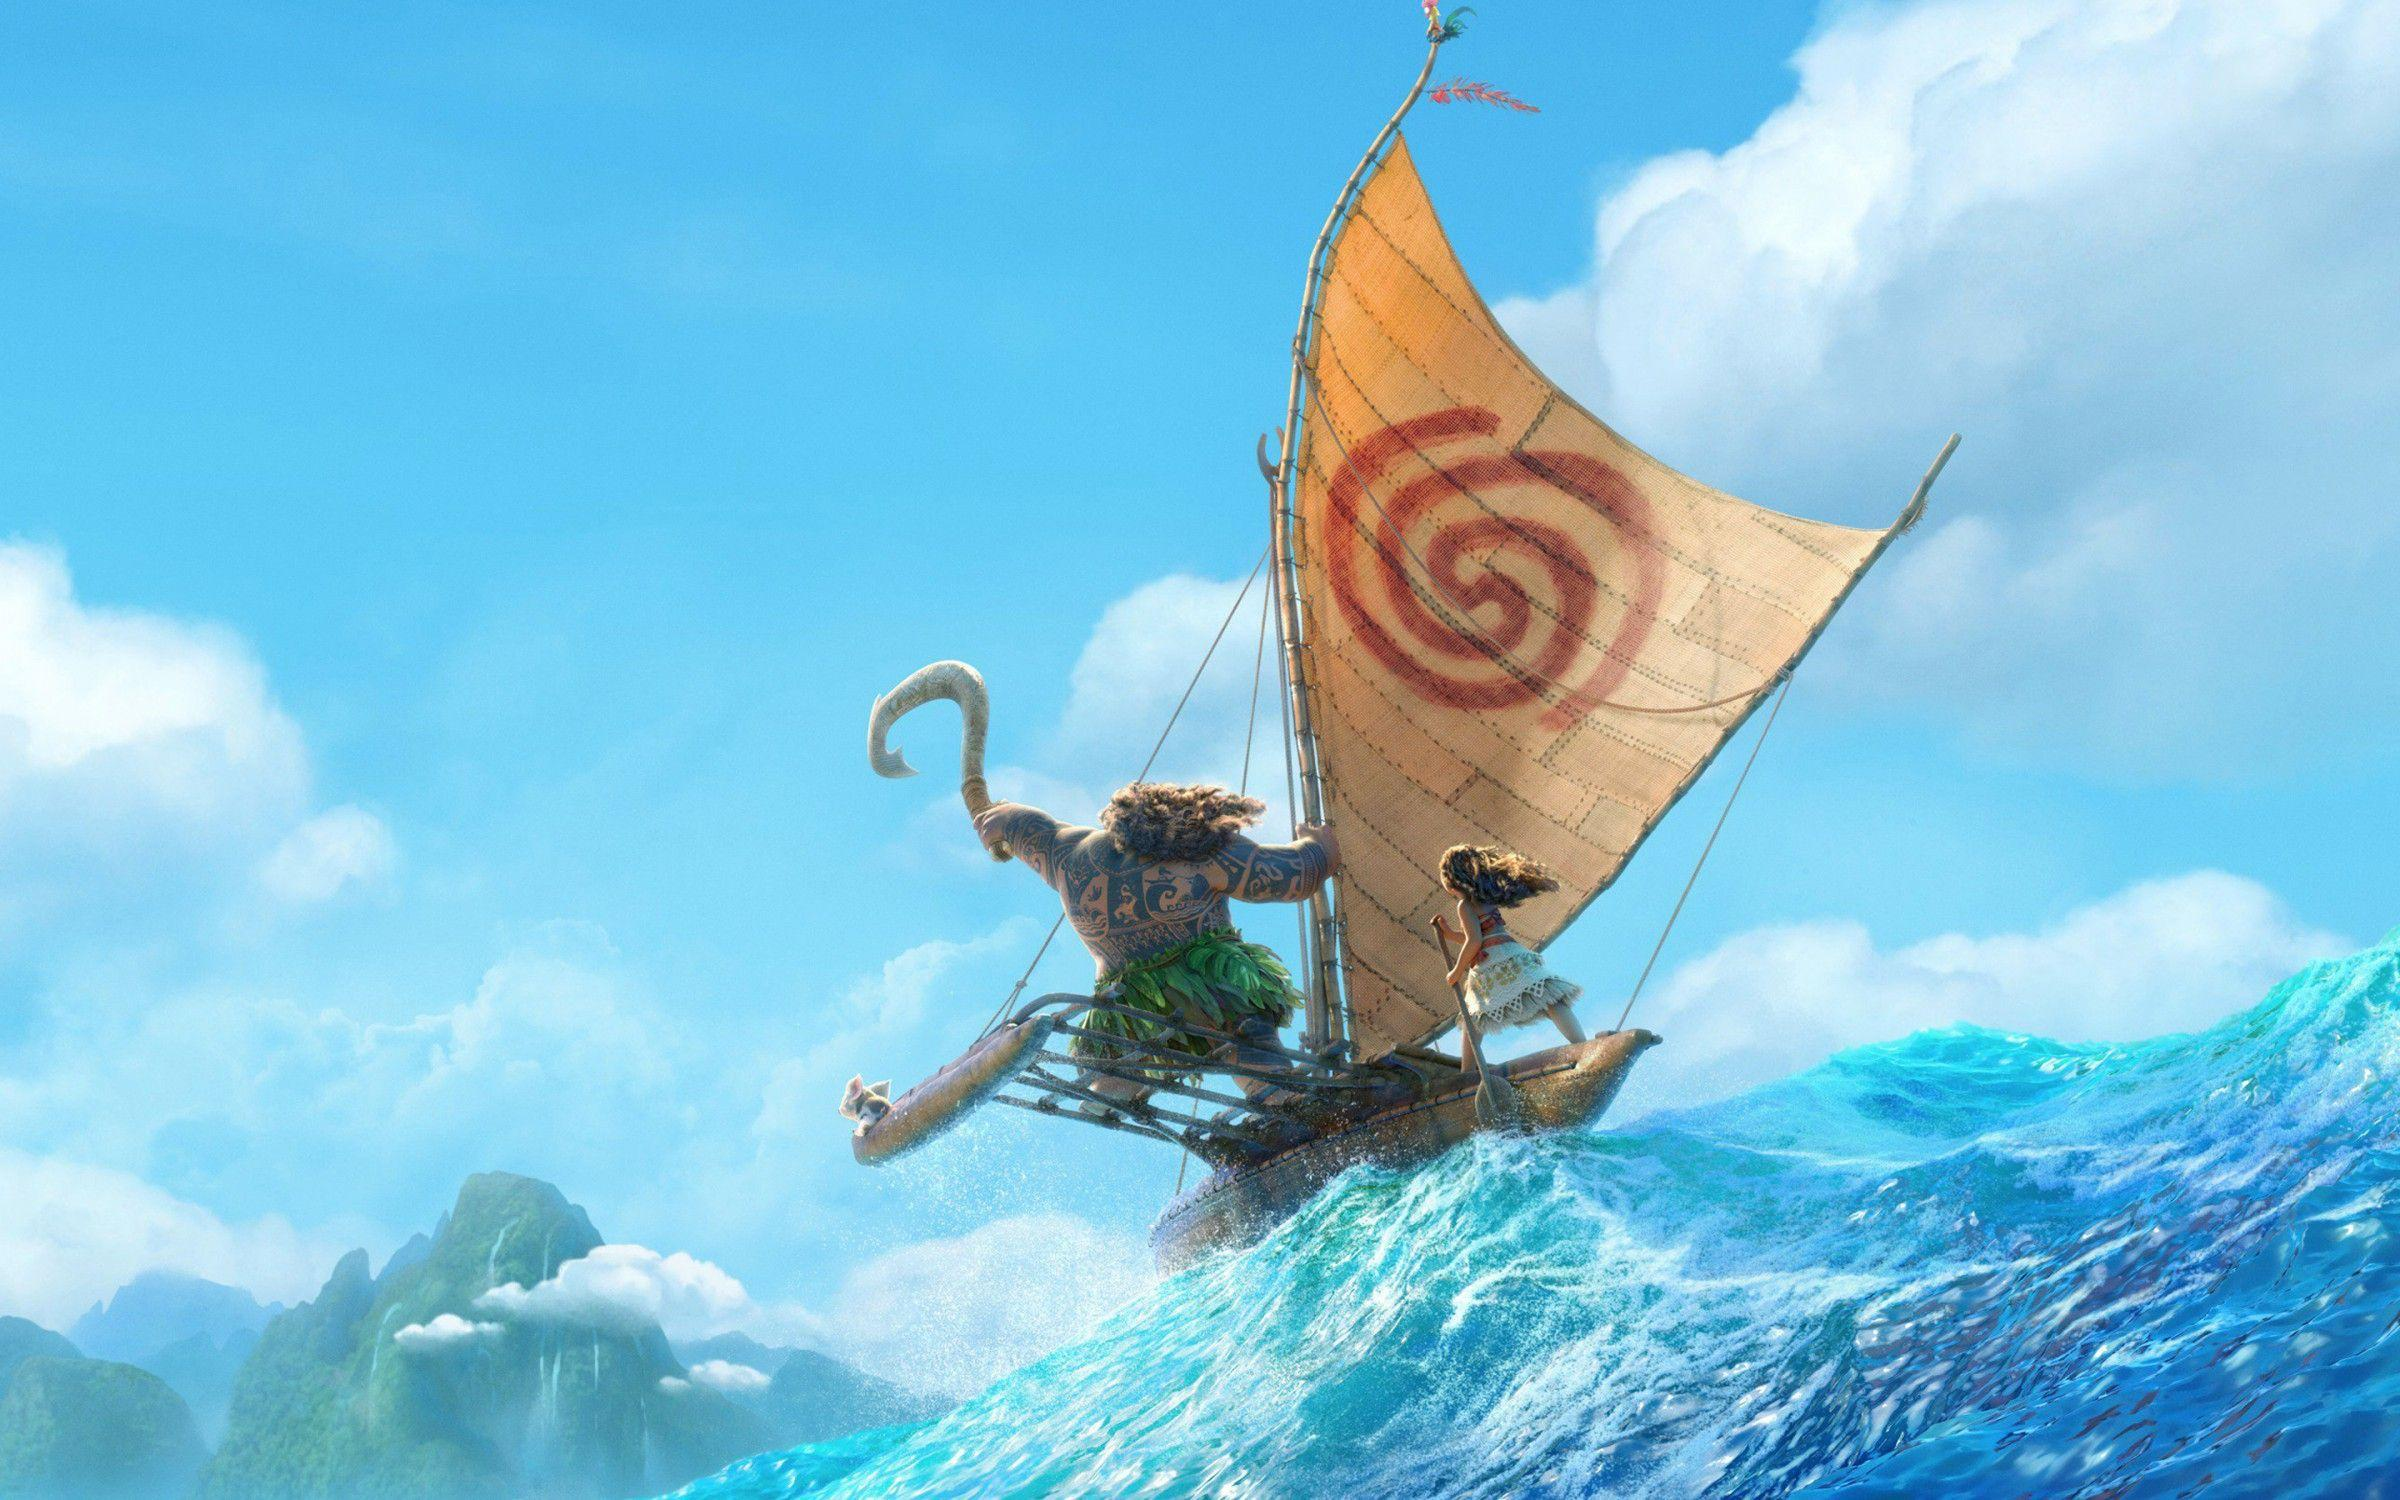 Moana HD Images 7 | Moana HD Images | Pinterest